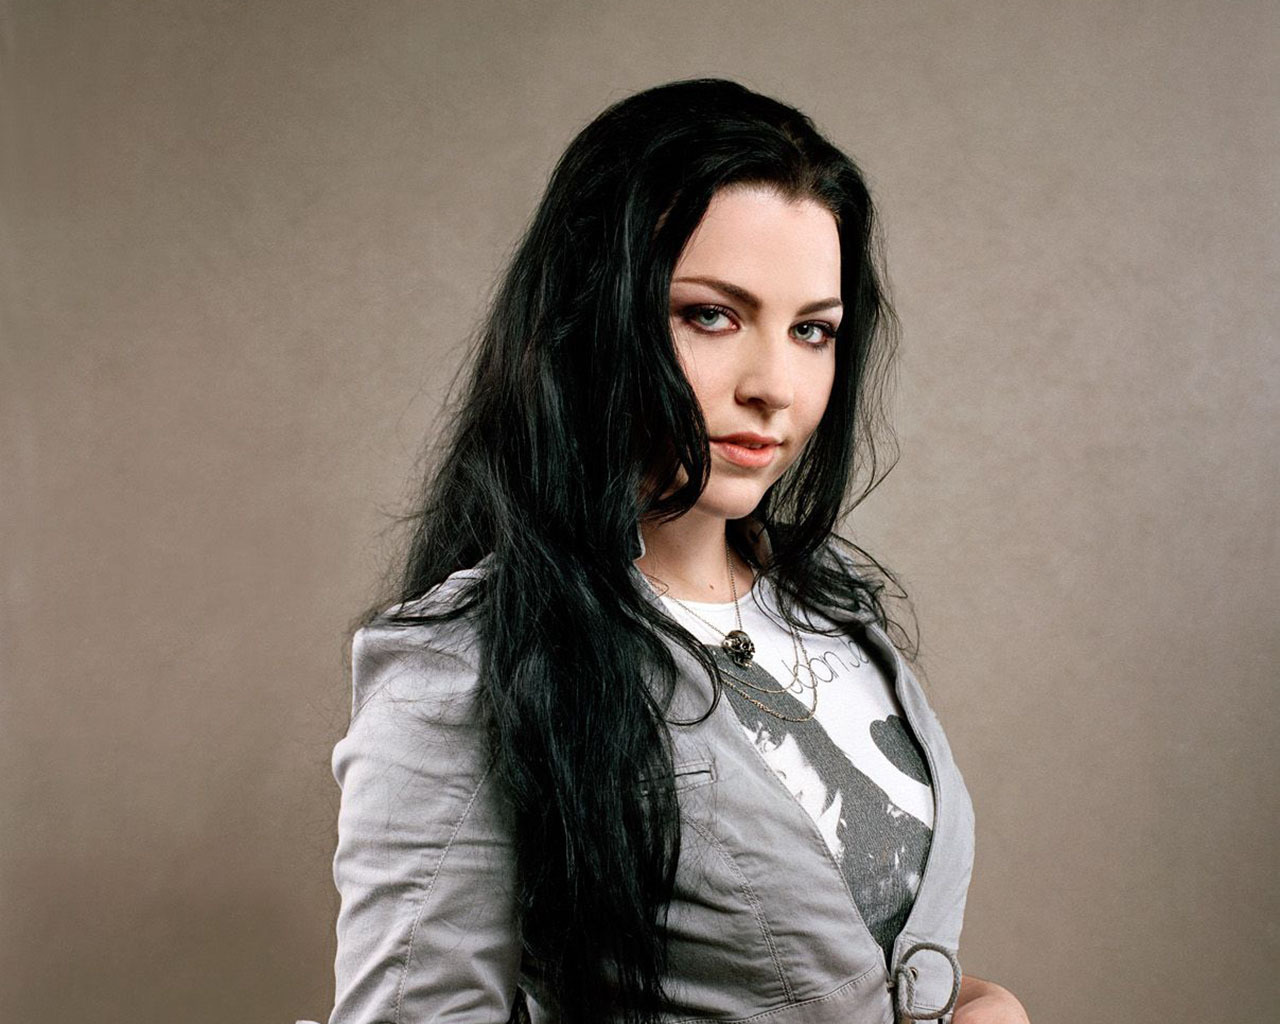 Evanescence images Amy Lee HD wallpaper and background 1280x1024